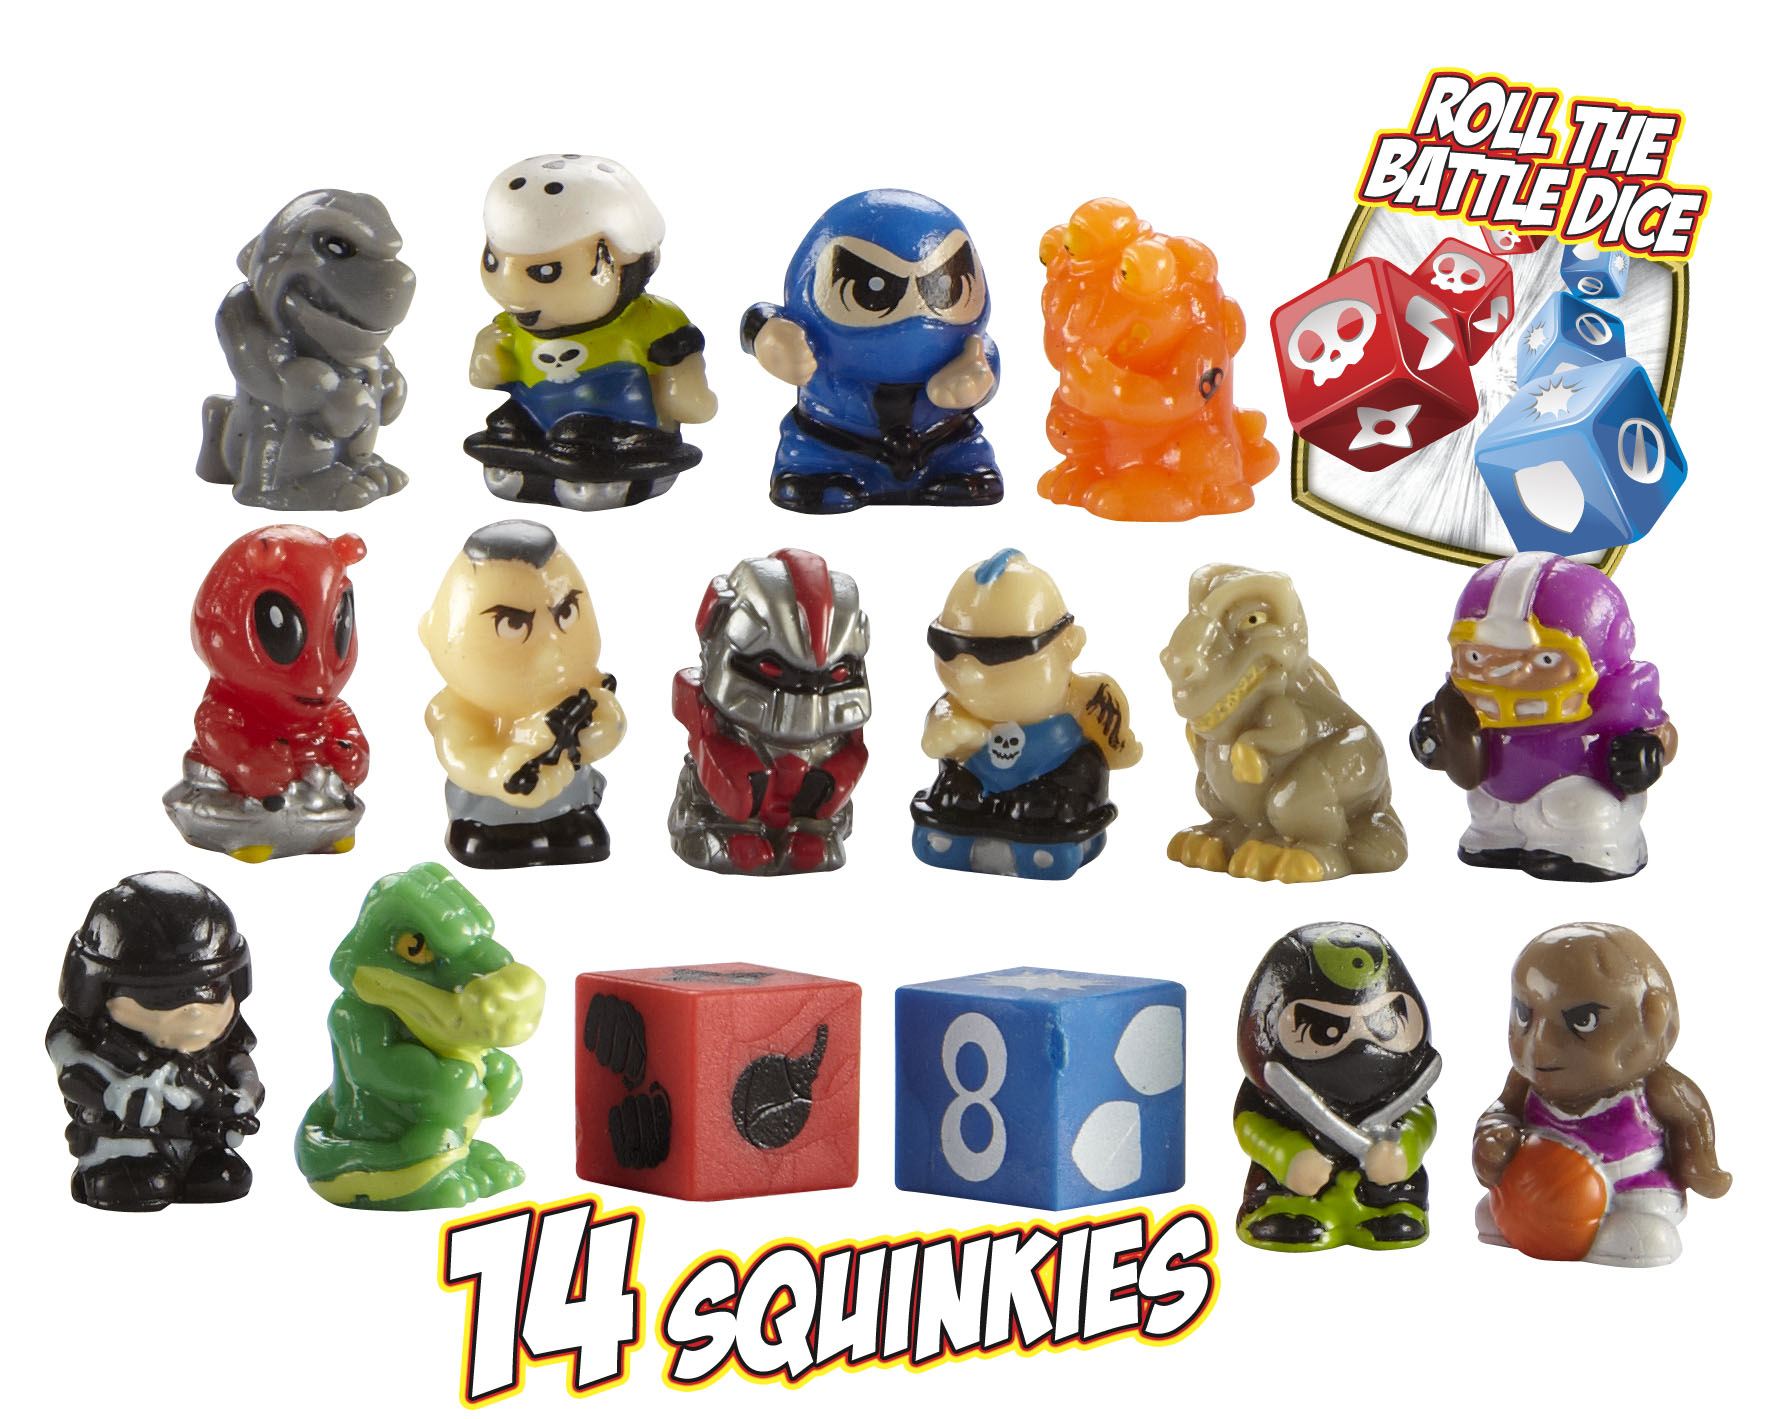 Squinkies Toys For Boys : Squinkies boys pc bubble pack asstd series review